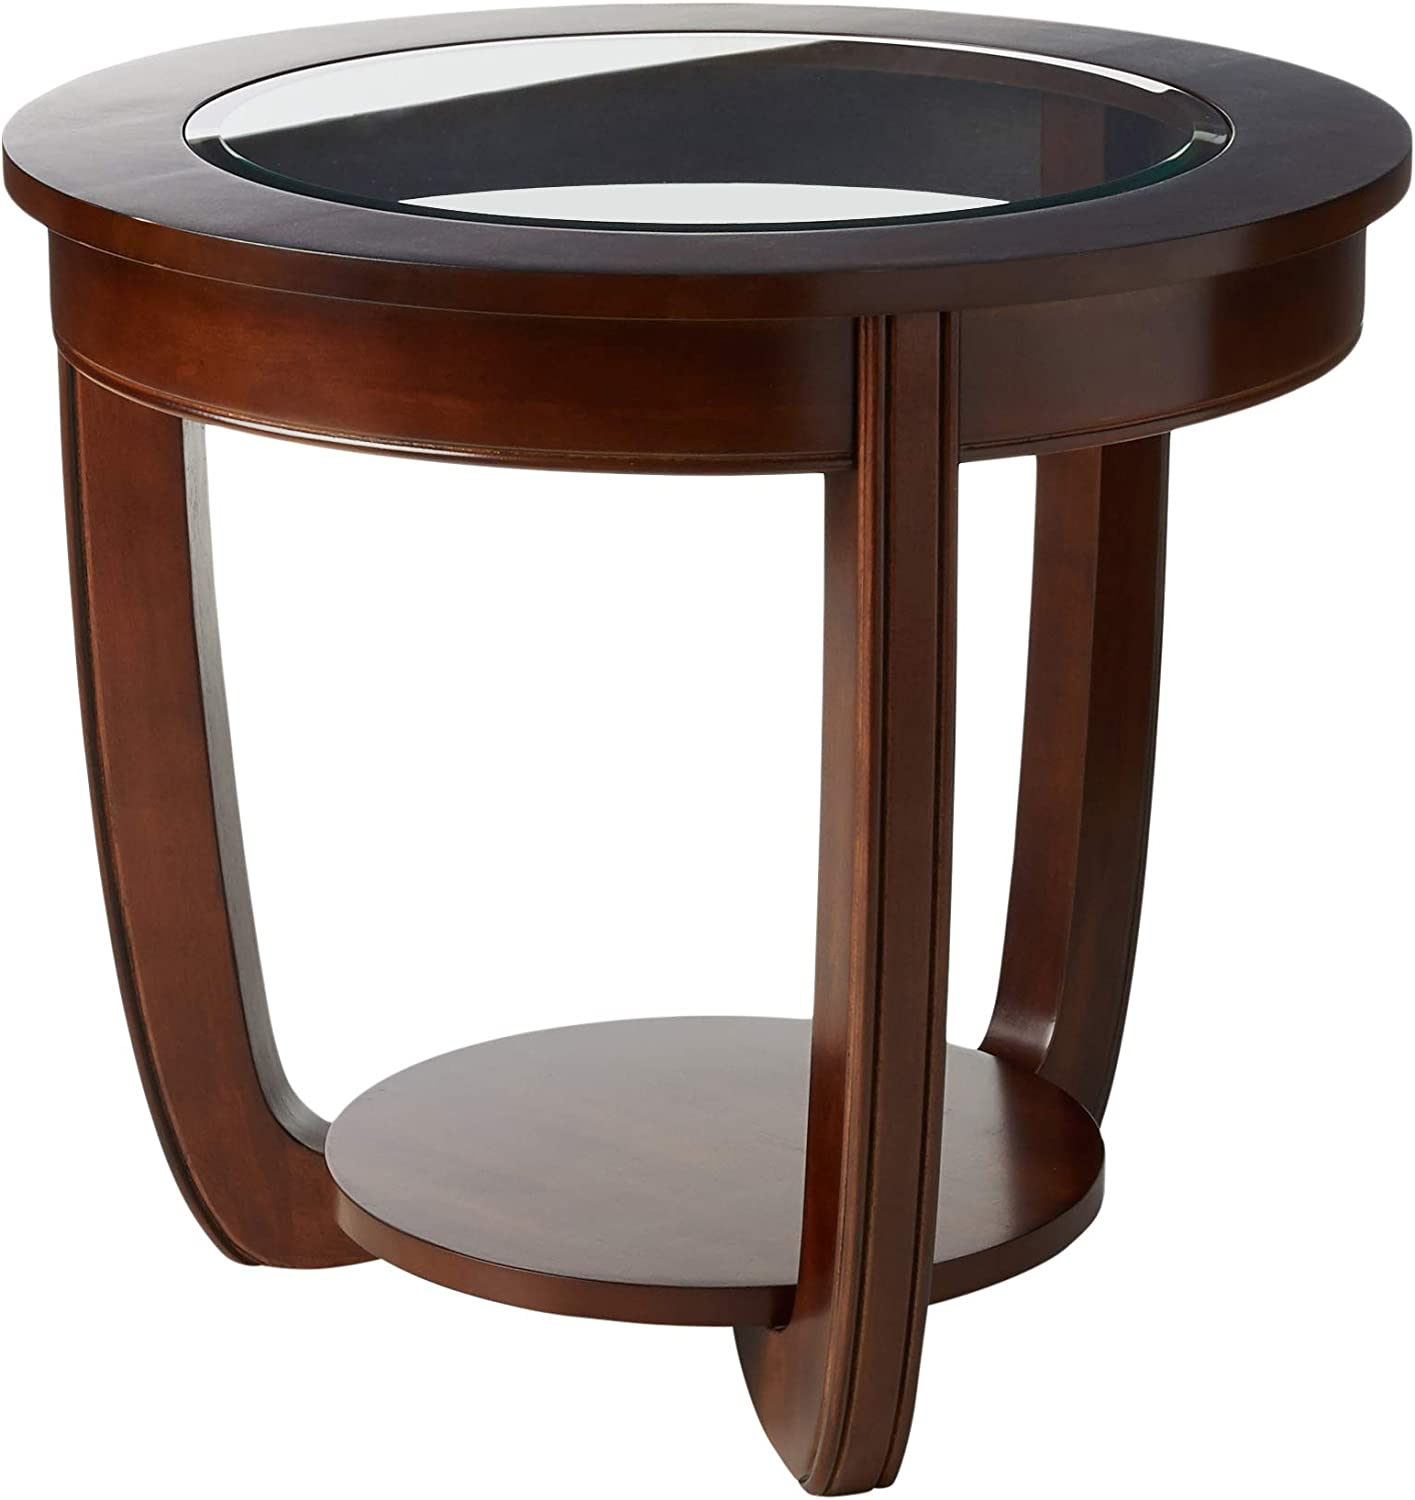 Furniture of America Byrnee End Table with 5mm Beveled Glass Top, Dark Cherry Finish